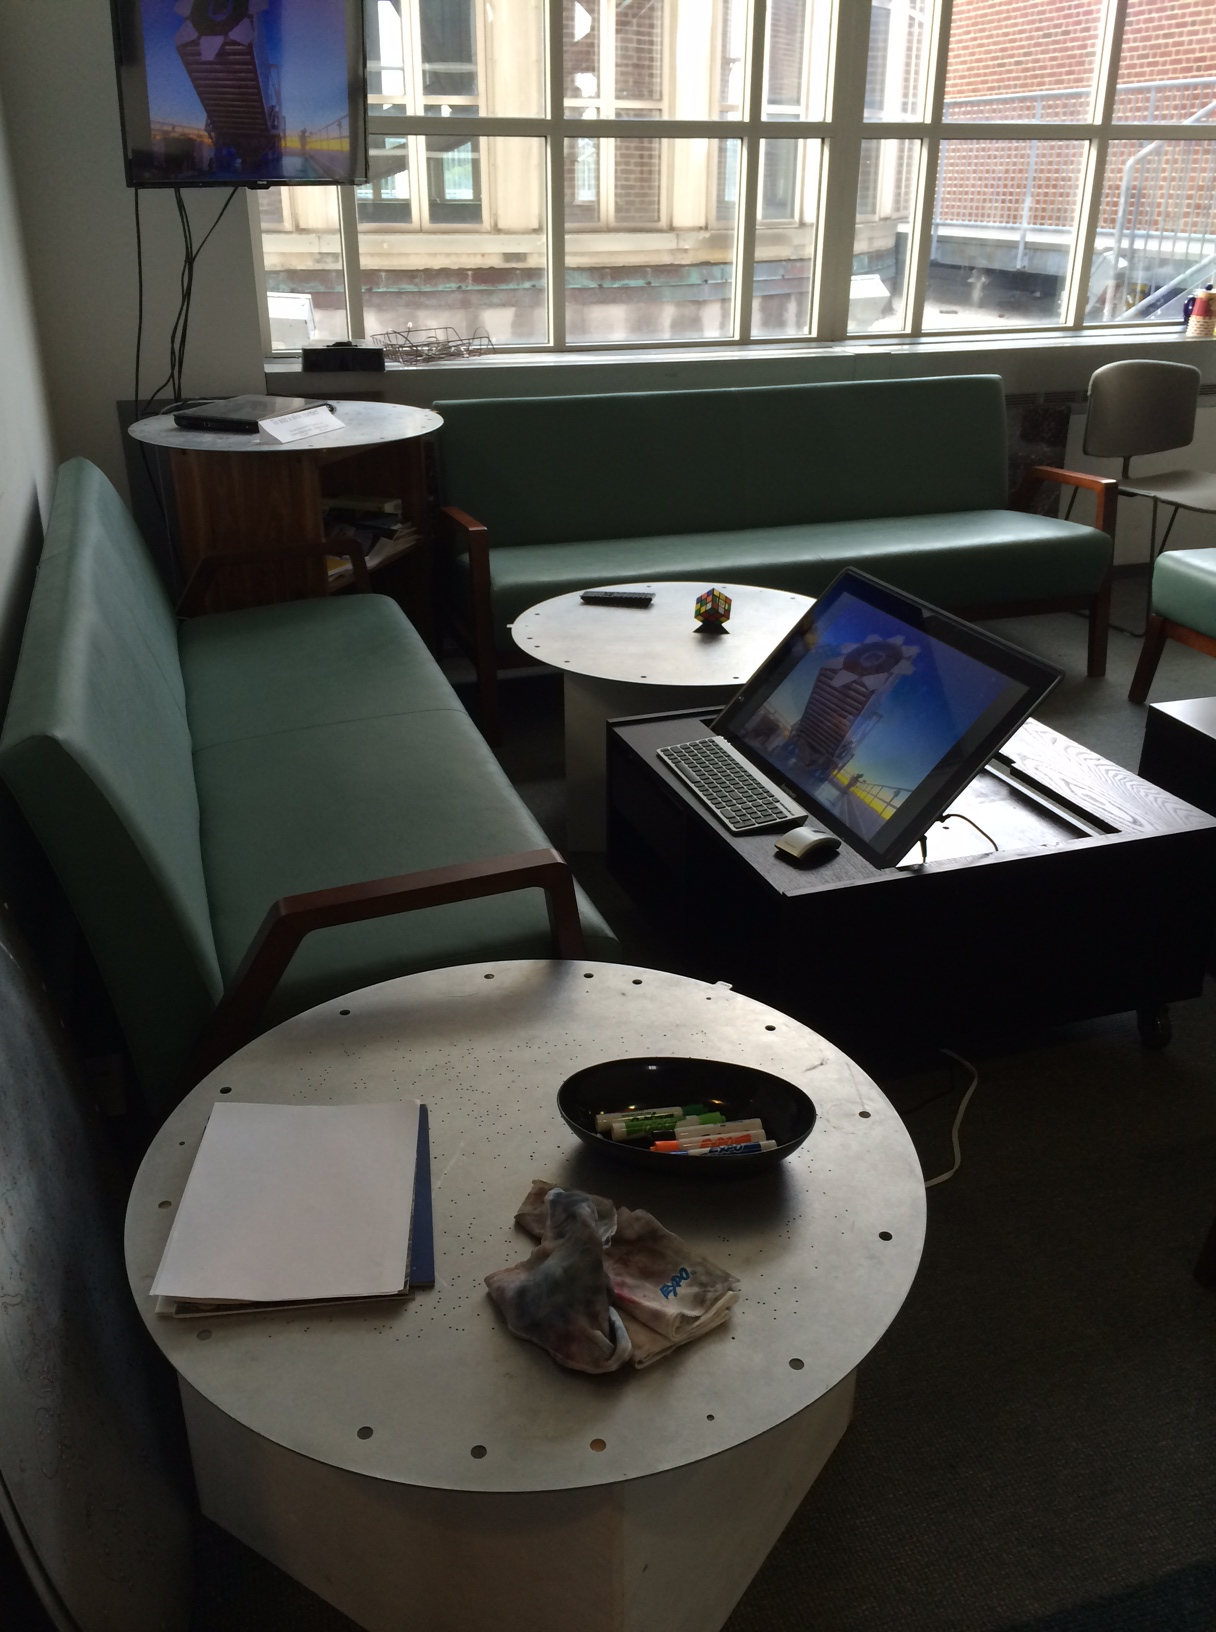 SDSS Plug Plate Coffee Tables in use at JHU. Image credit: Gail Zasowski